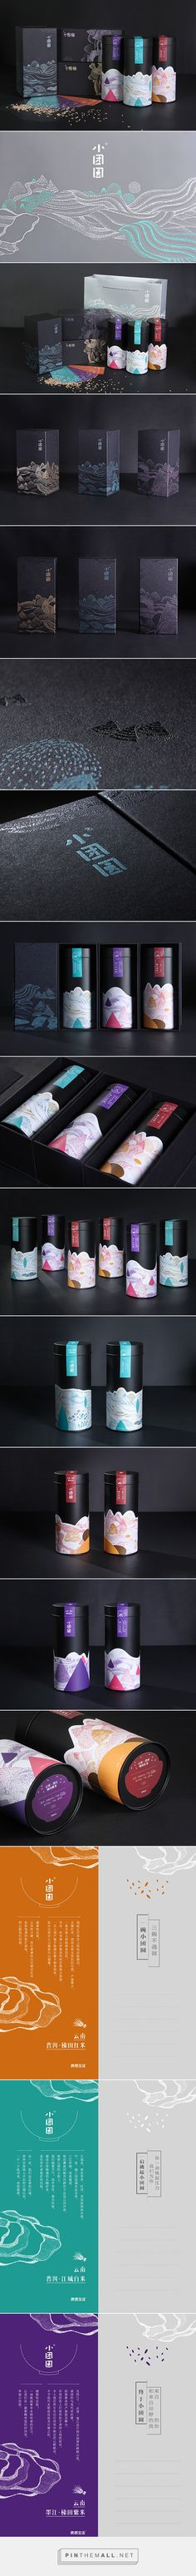 Xiaotuanyuan (I believe it's tea oil, rice and salt -please feel free to correct me) designed by Yi Mi Xiaoxin. Pin curated by Rice Packaging, Cool Packaging, Brand Packaging, Japanese Packaging, Tee Design, Label Design, Package Design, Corporate Design, Packaging Inspiration